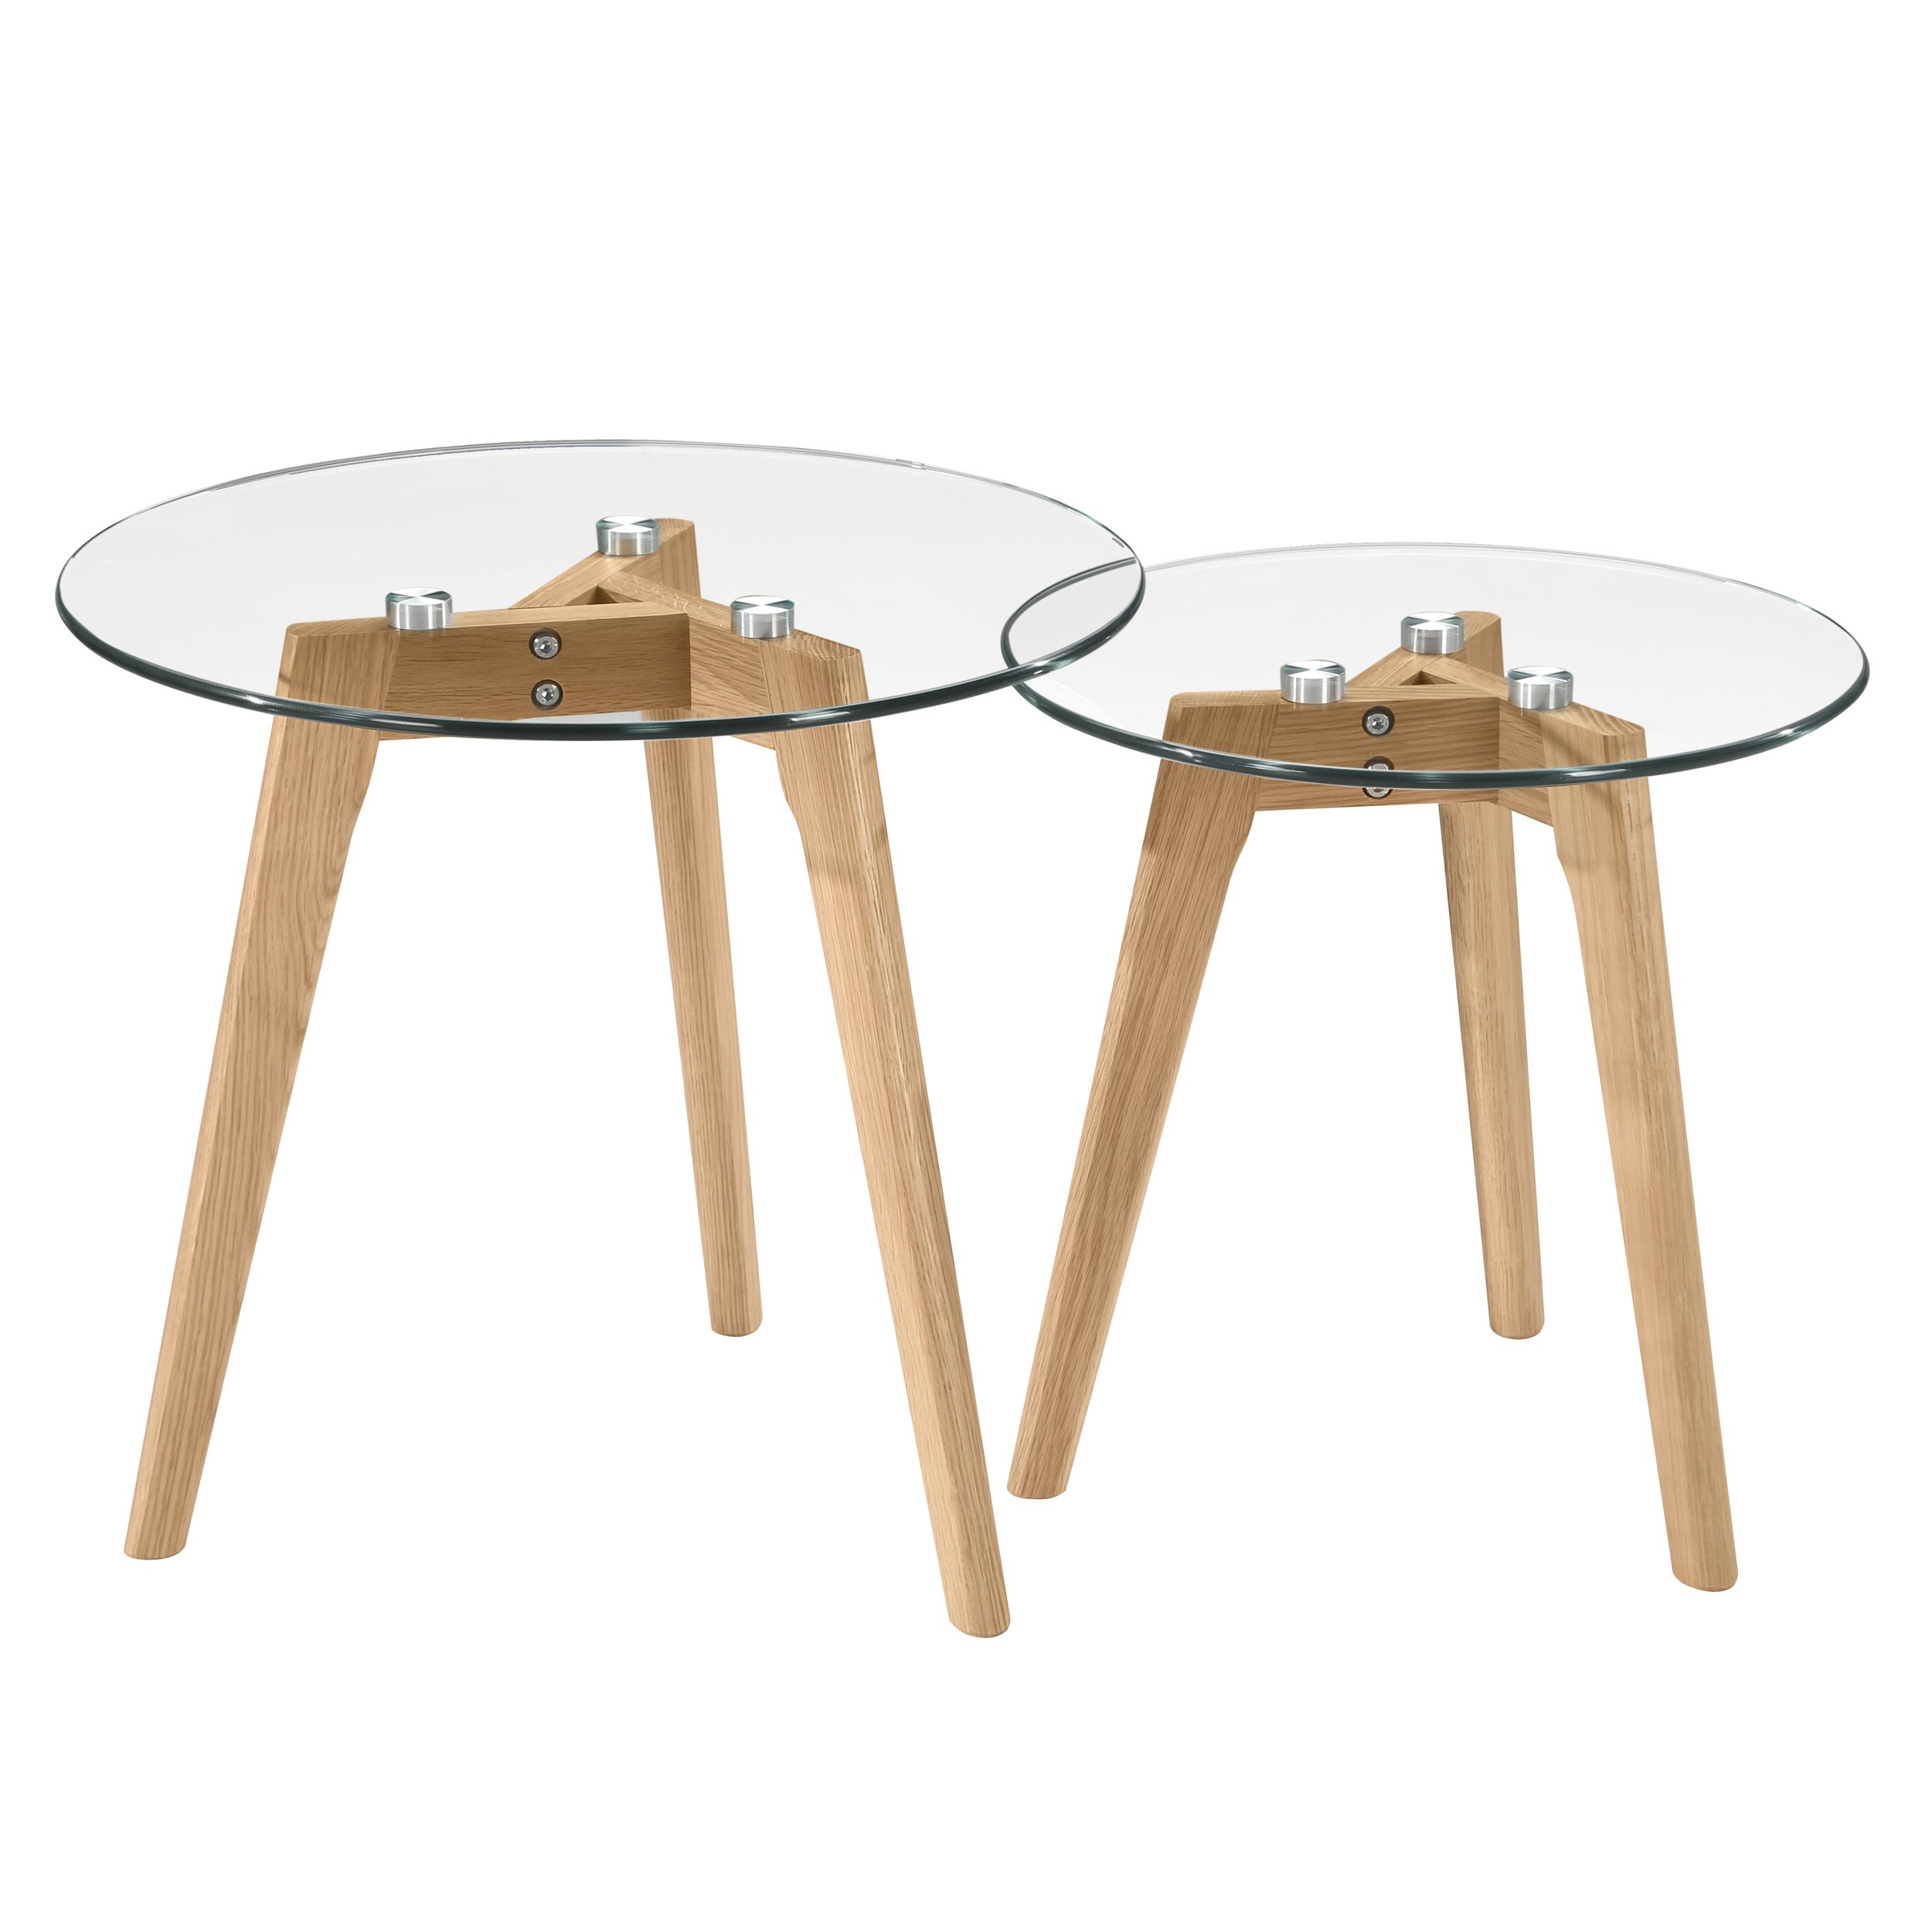 table basse ronde bilto lot de 2 achetez les tables basses rondes bilto lot de 2 rdv d co. Black Bedroom Furniture Sets. Home Design Ideas